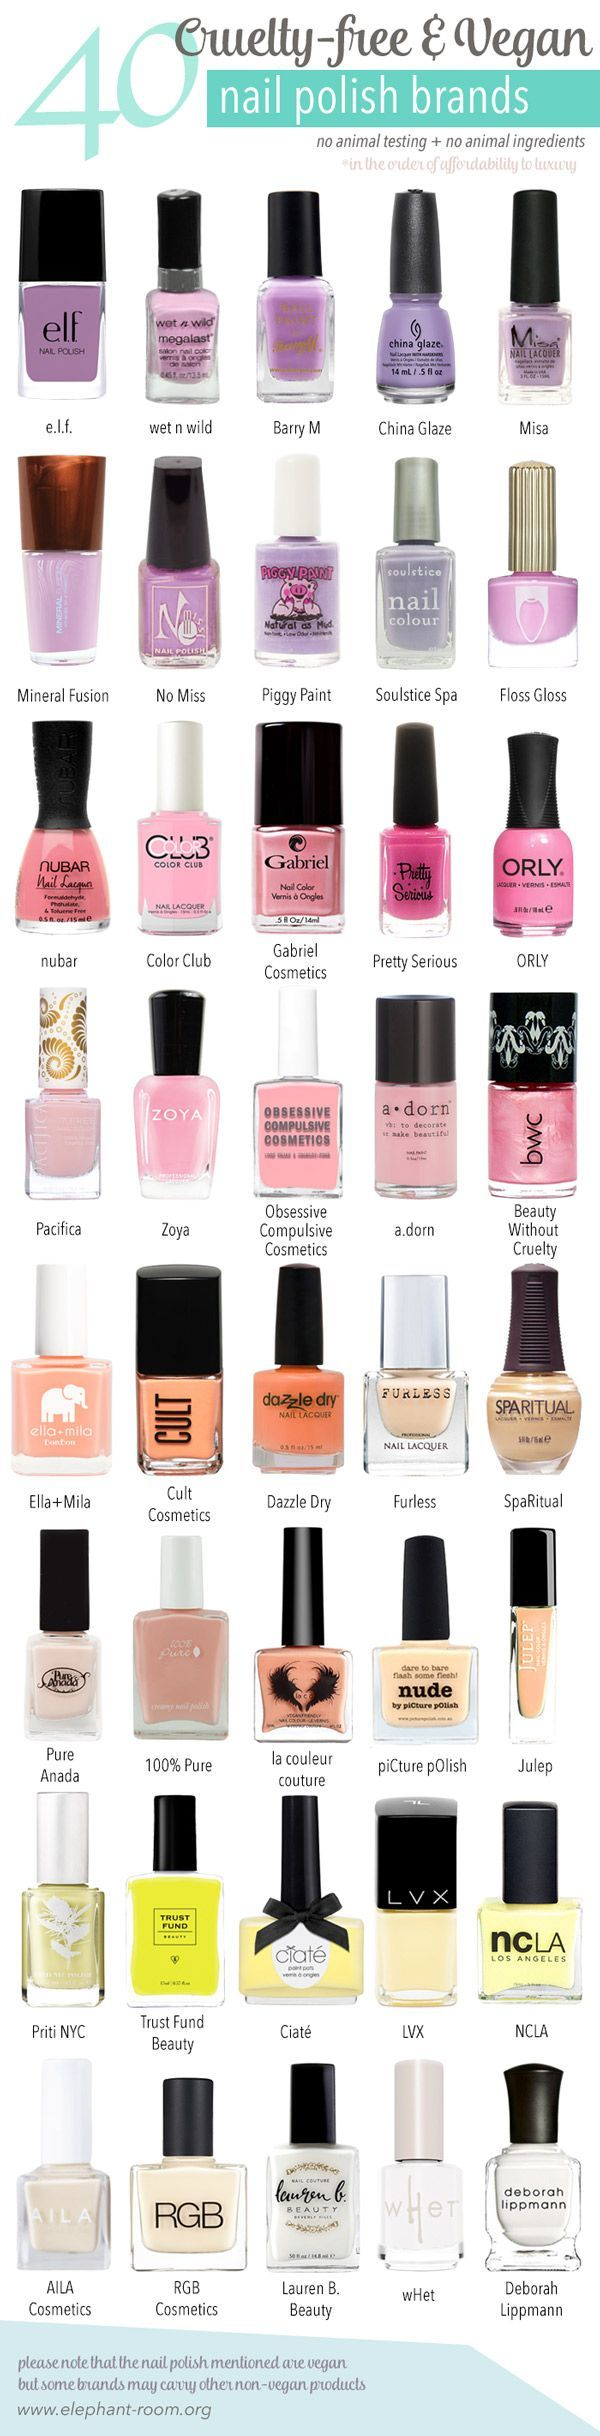 List of 40 cruelty free and vegan nail polish brands!